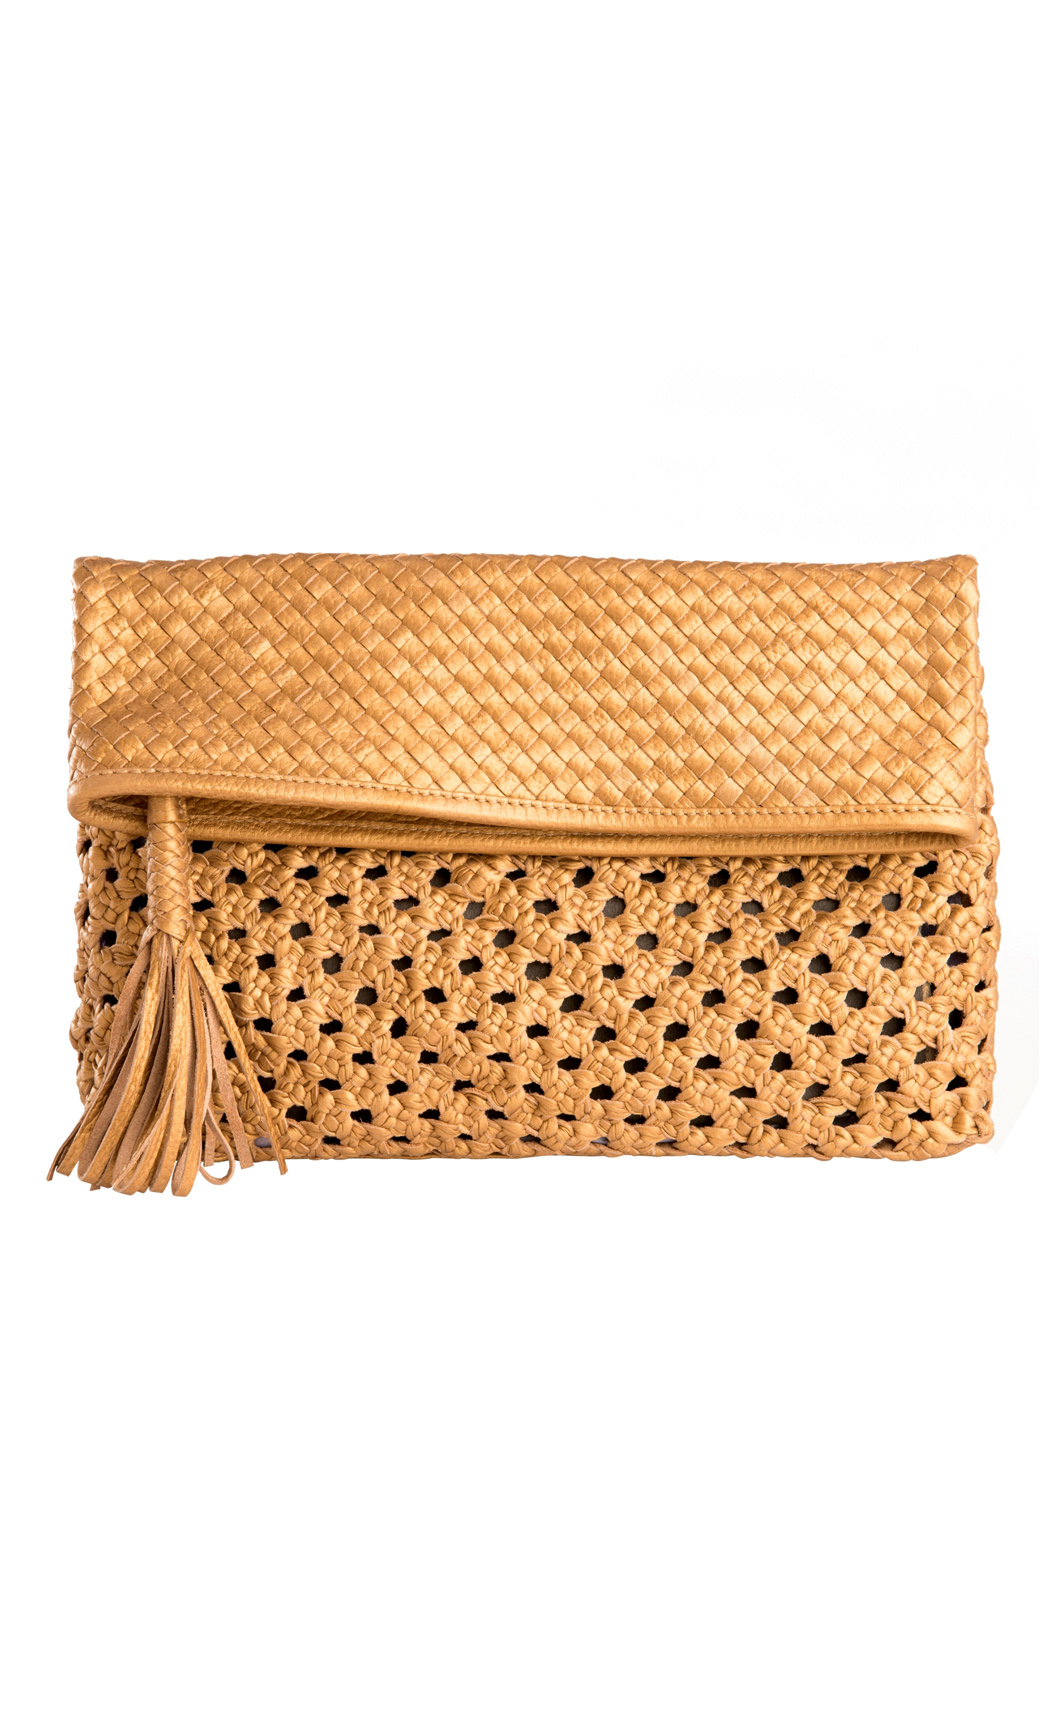 Classic Weave Foldover Clutch in Gold. Buy Online